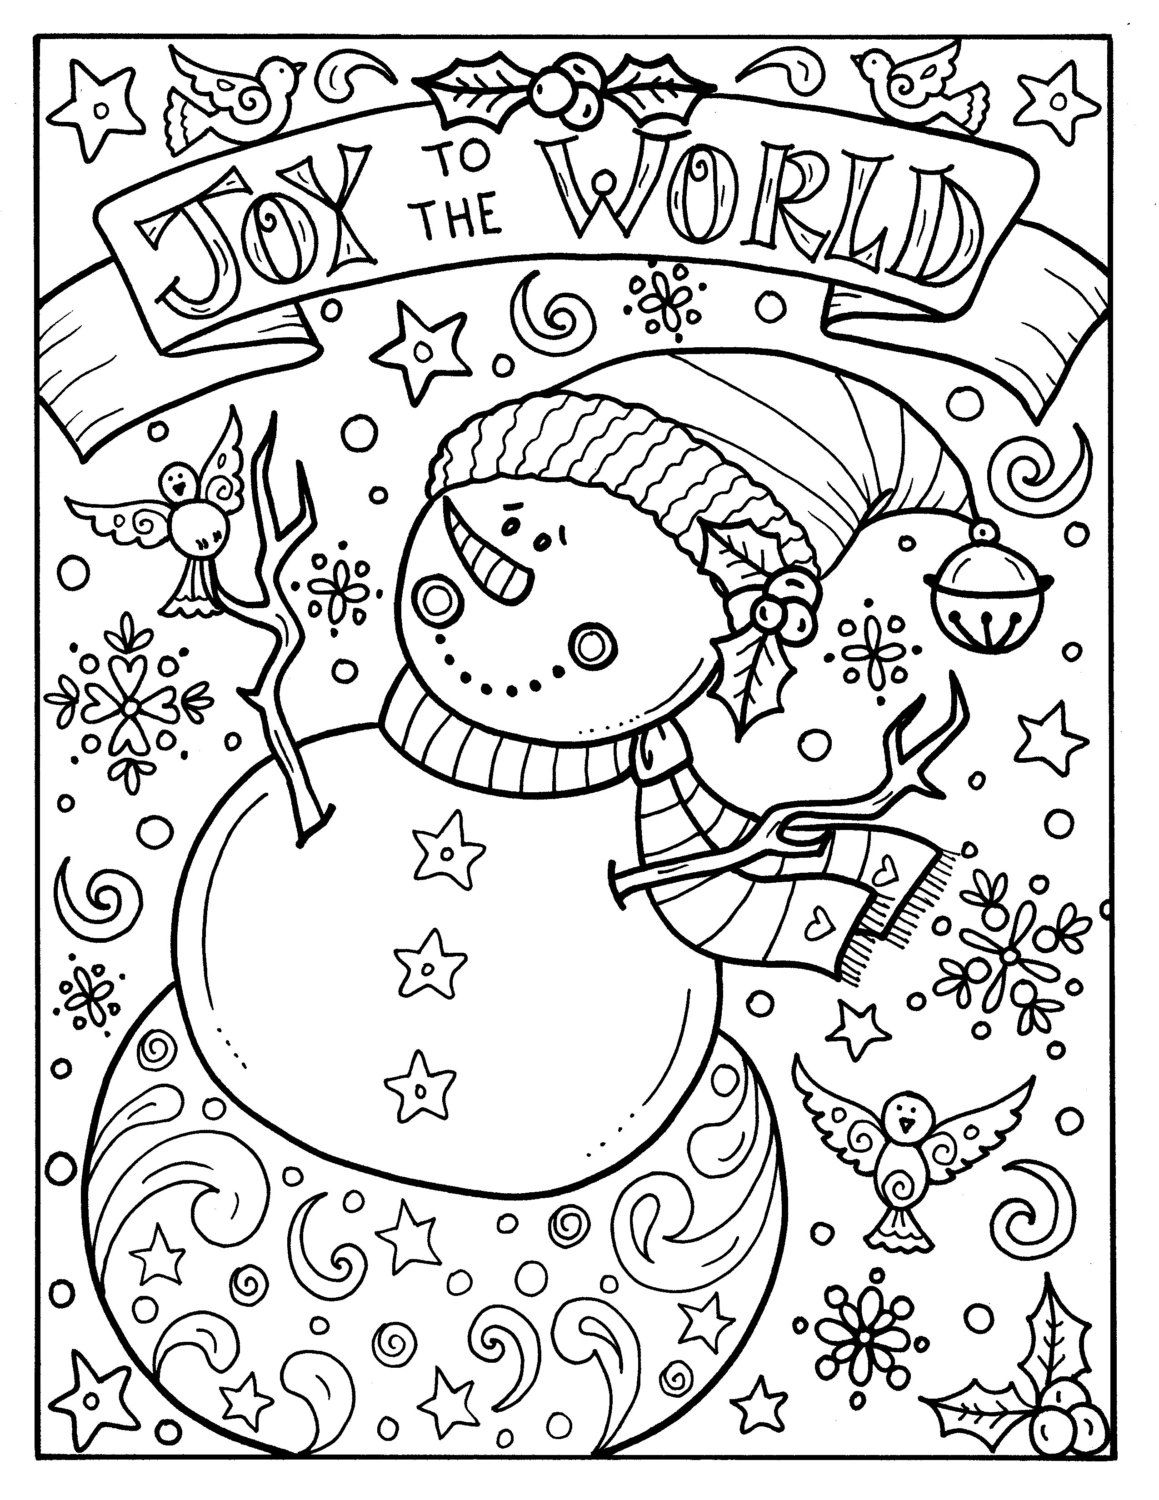 Snowman Joy To The World Digital Download Christmas